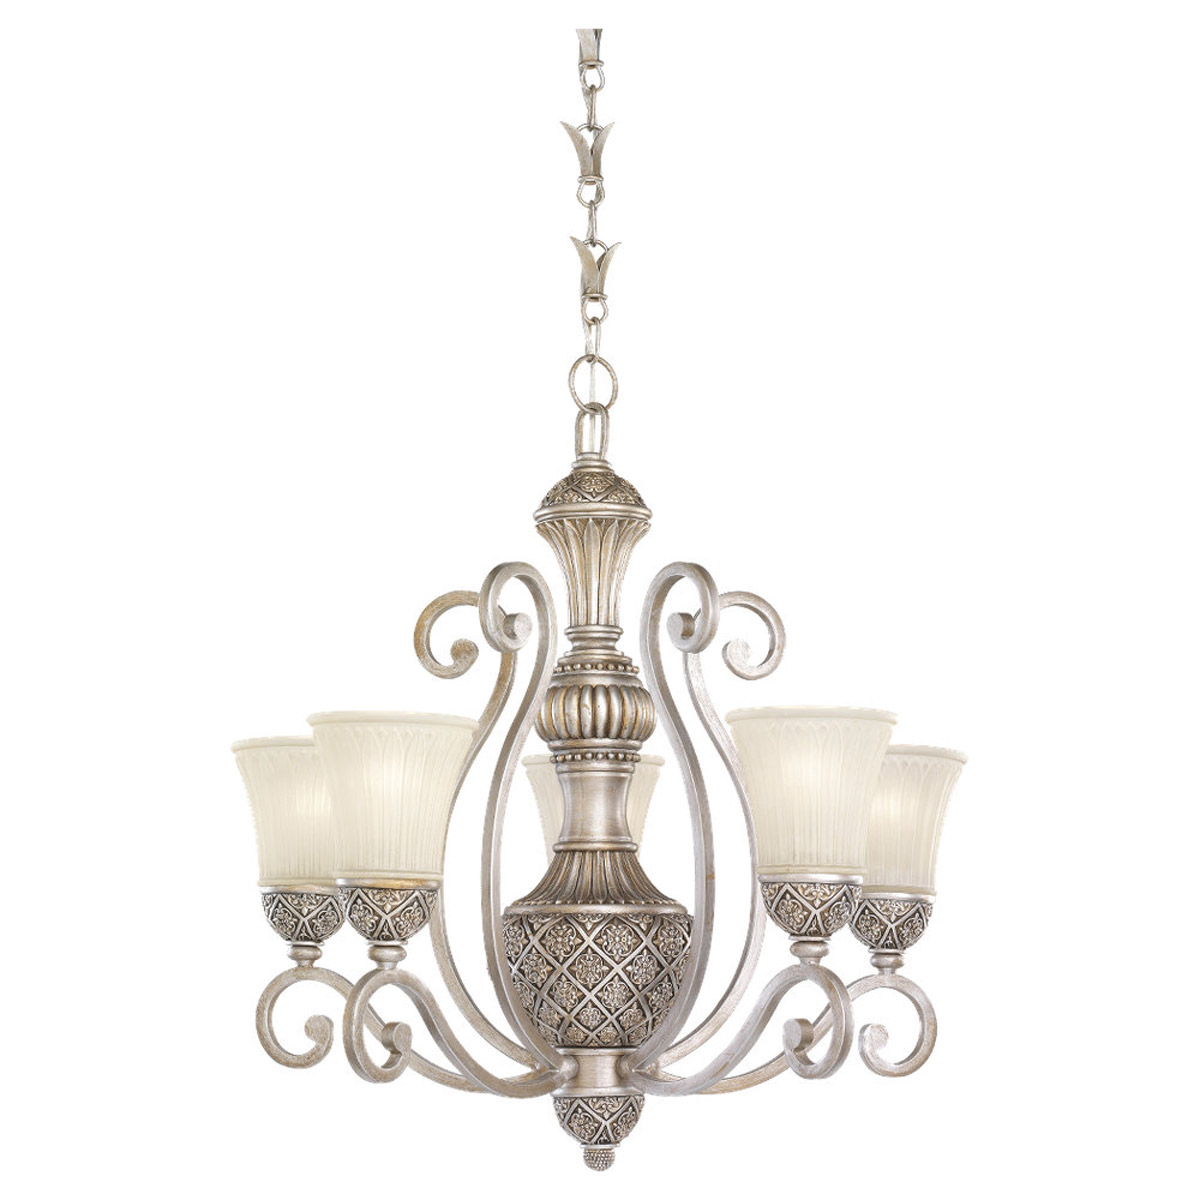 Sea Gull Lighting Highlands 5 Light Chandelier in Palladium 31751-824